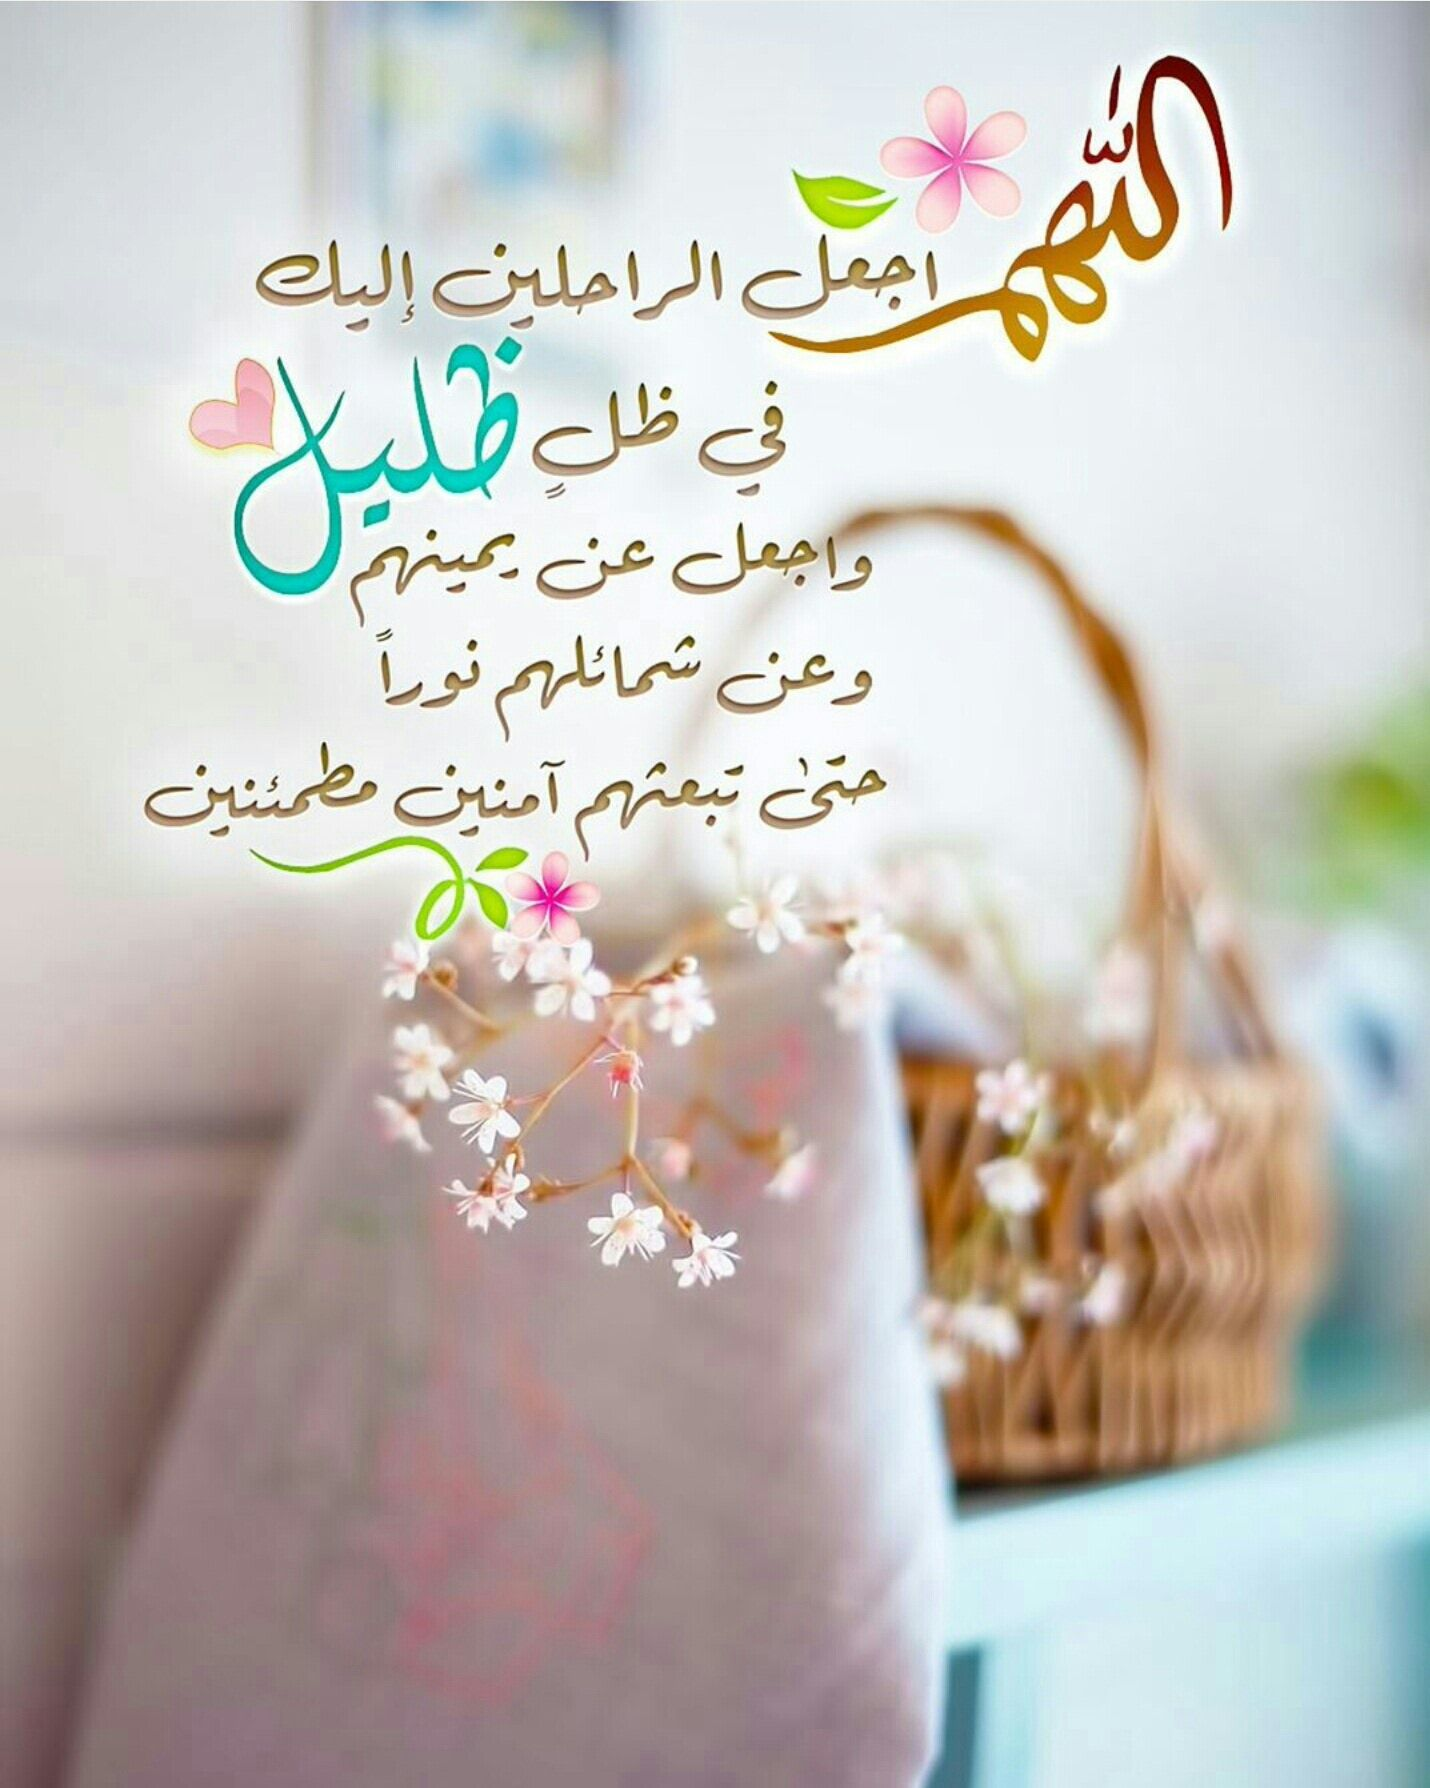 Pin By صورة و كلمة On Duea دعاء Islamic Birthday Wishes Mom And Dad Quotes Islamic Love Quotes